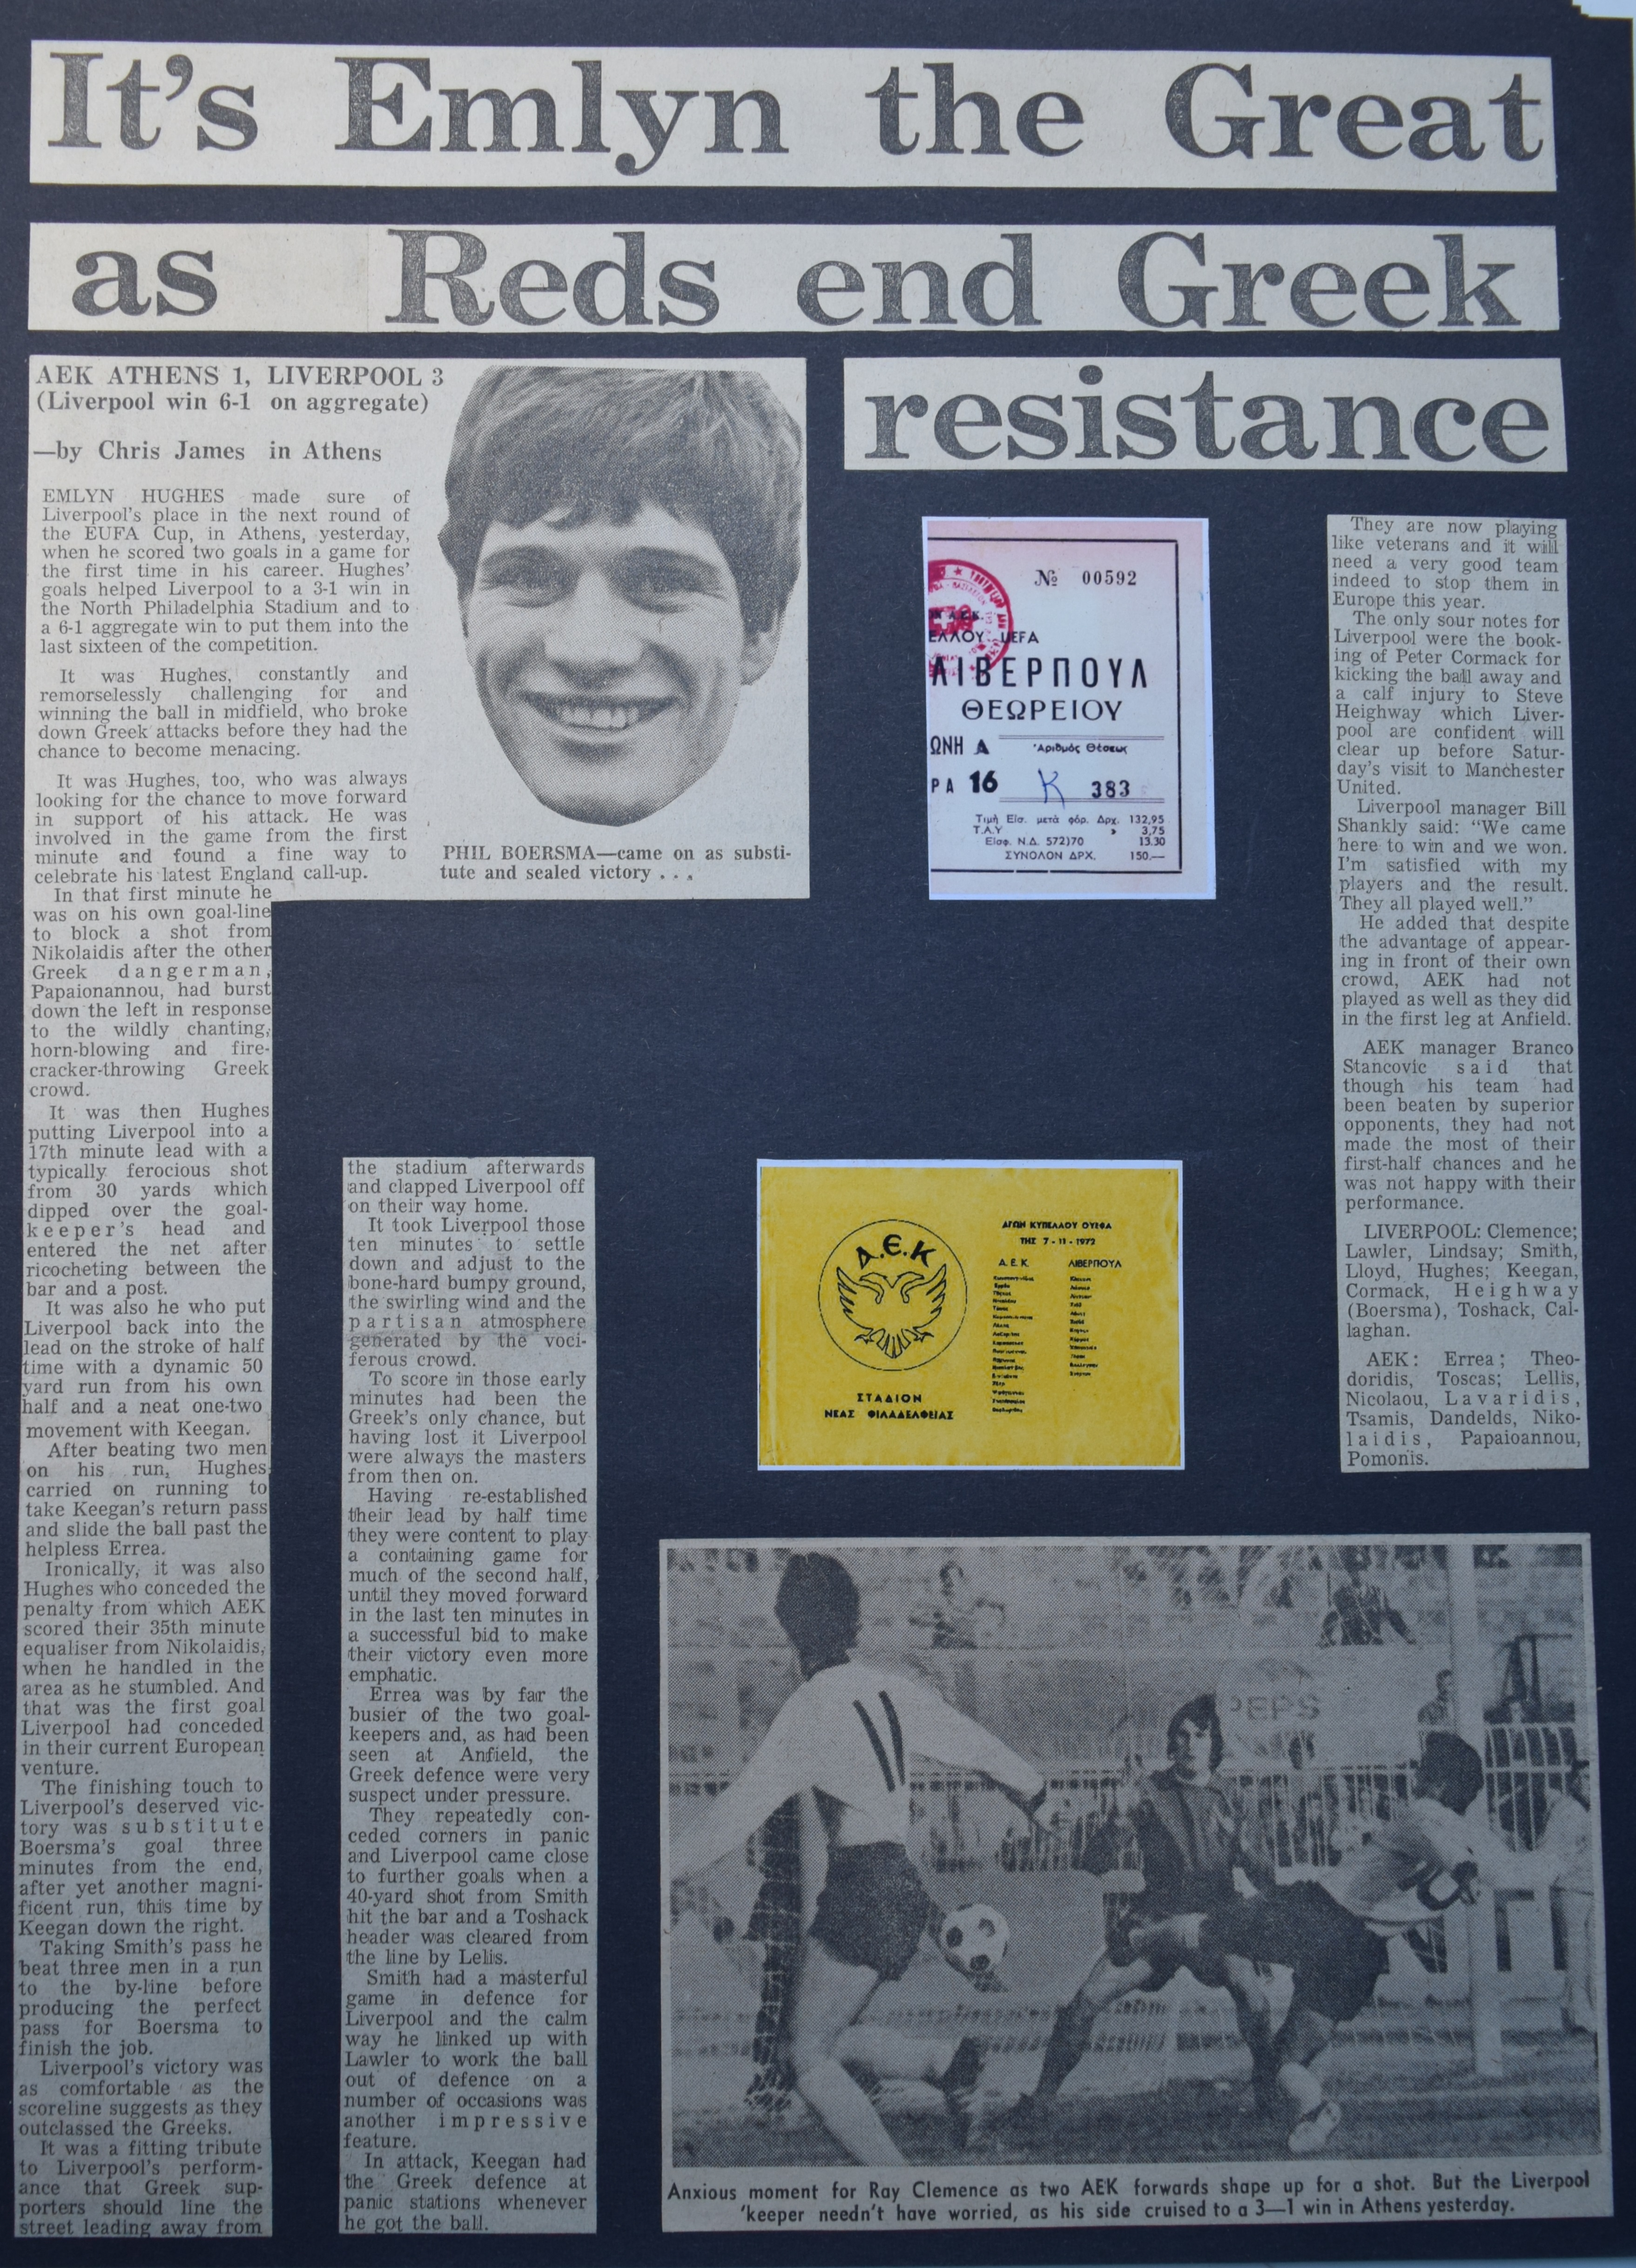 It's Emlyn the great as Reds end Greek resistance - 7 November 1972